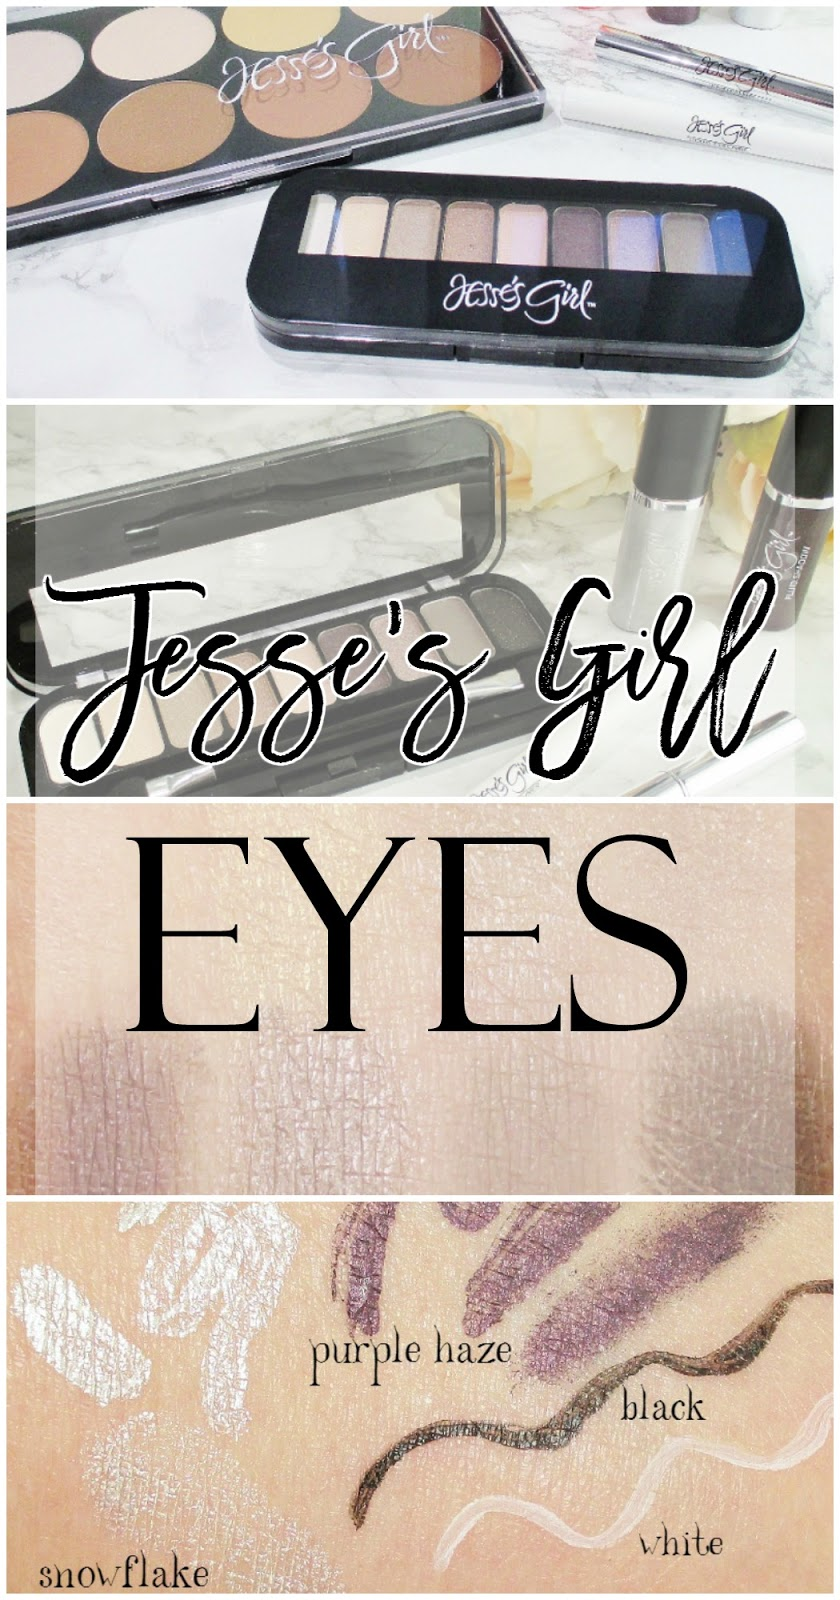 jesses-girl-eye-shadows-and-liners-review